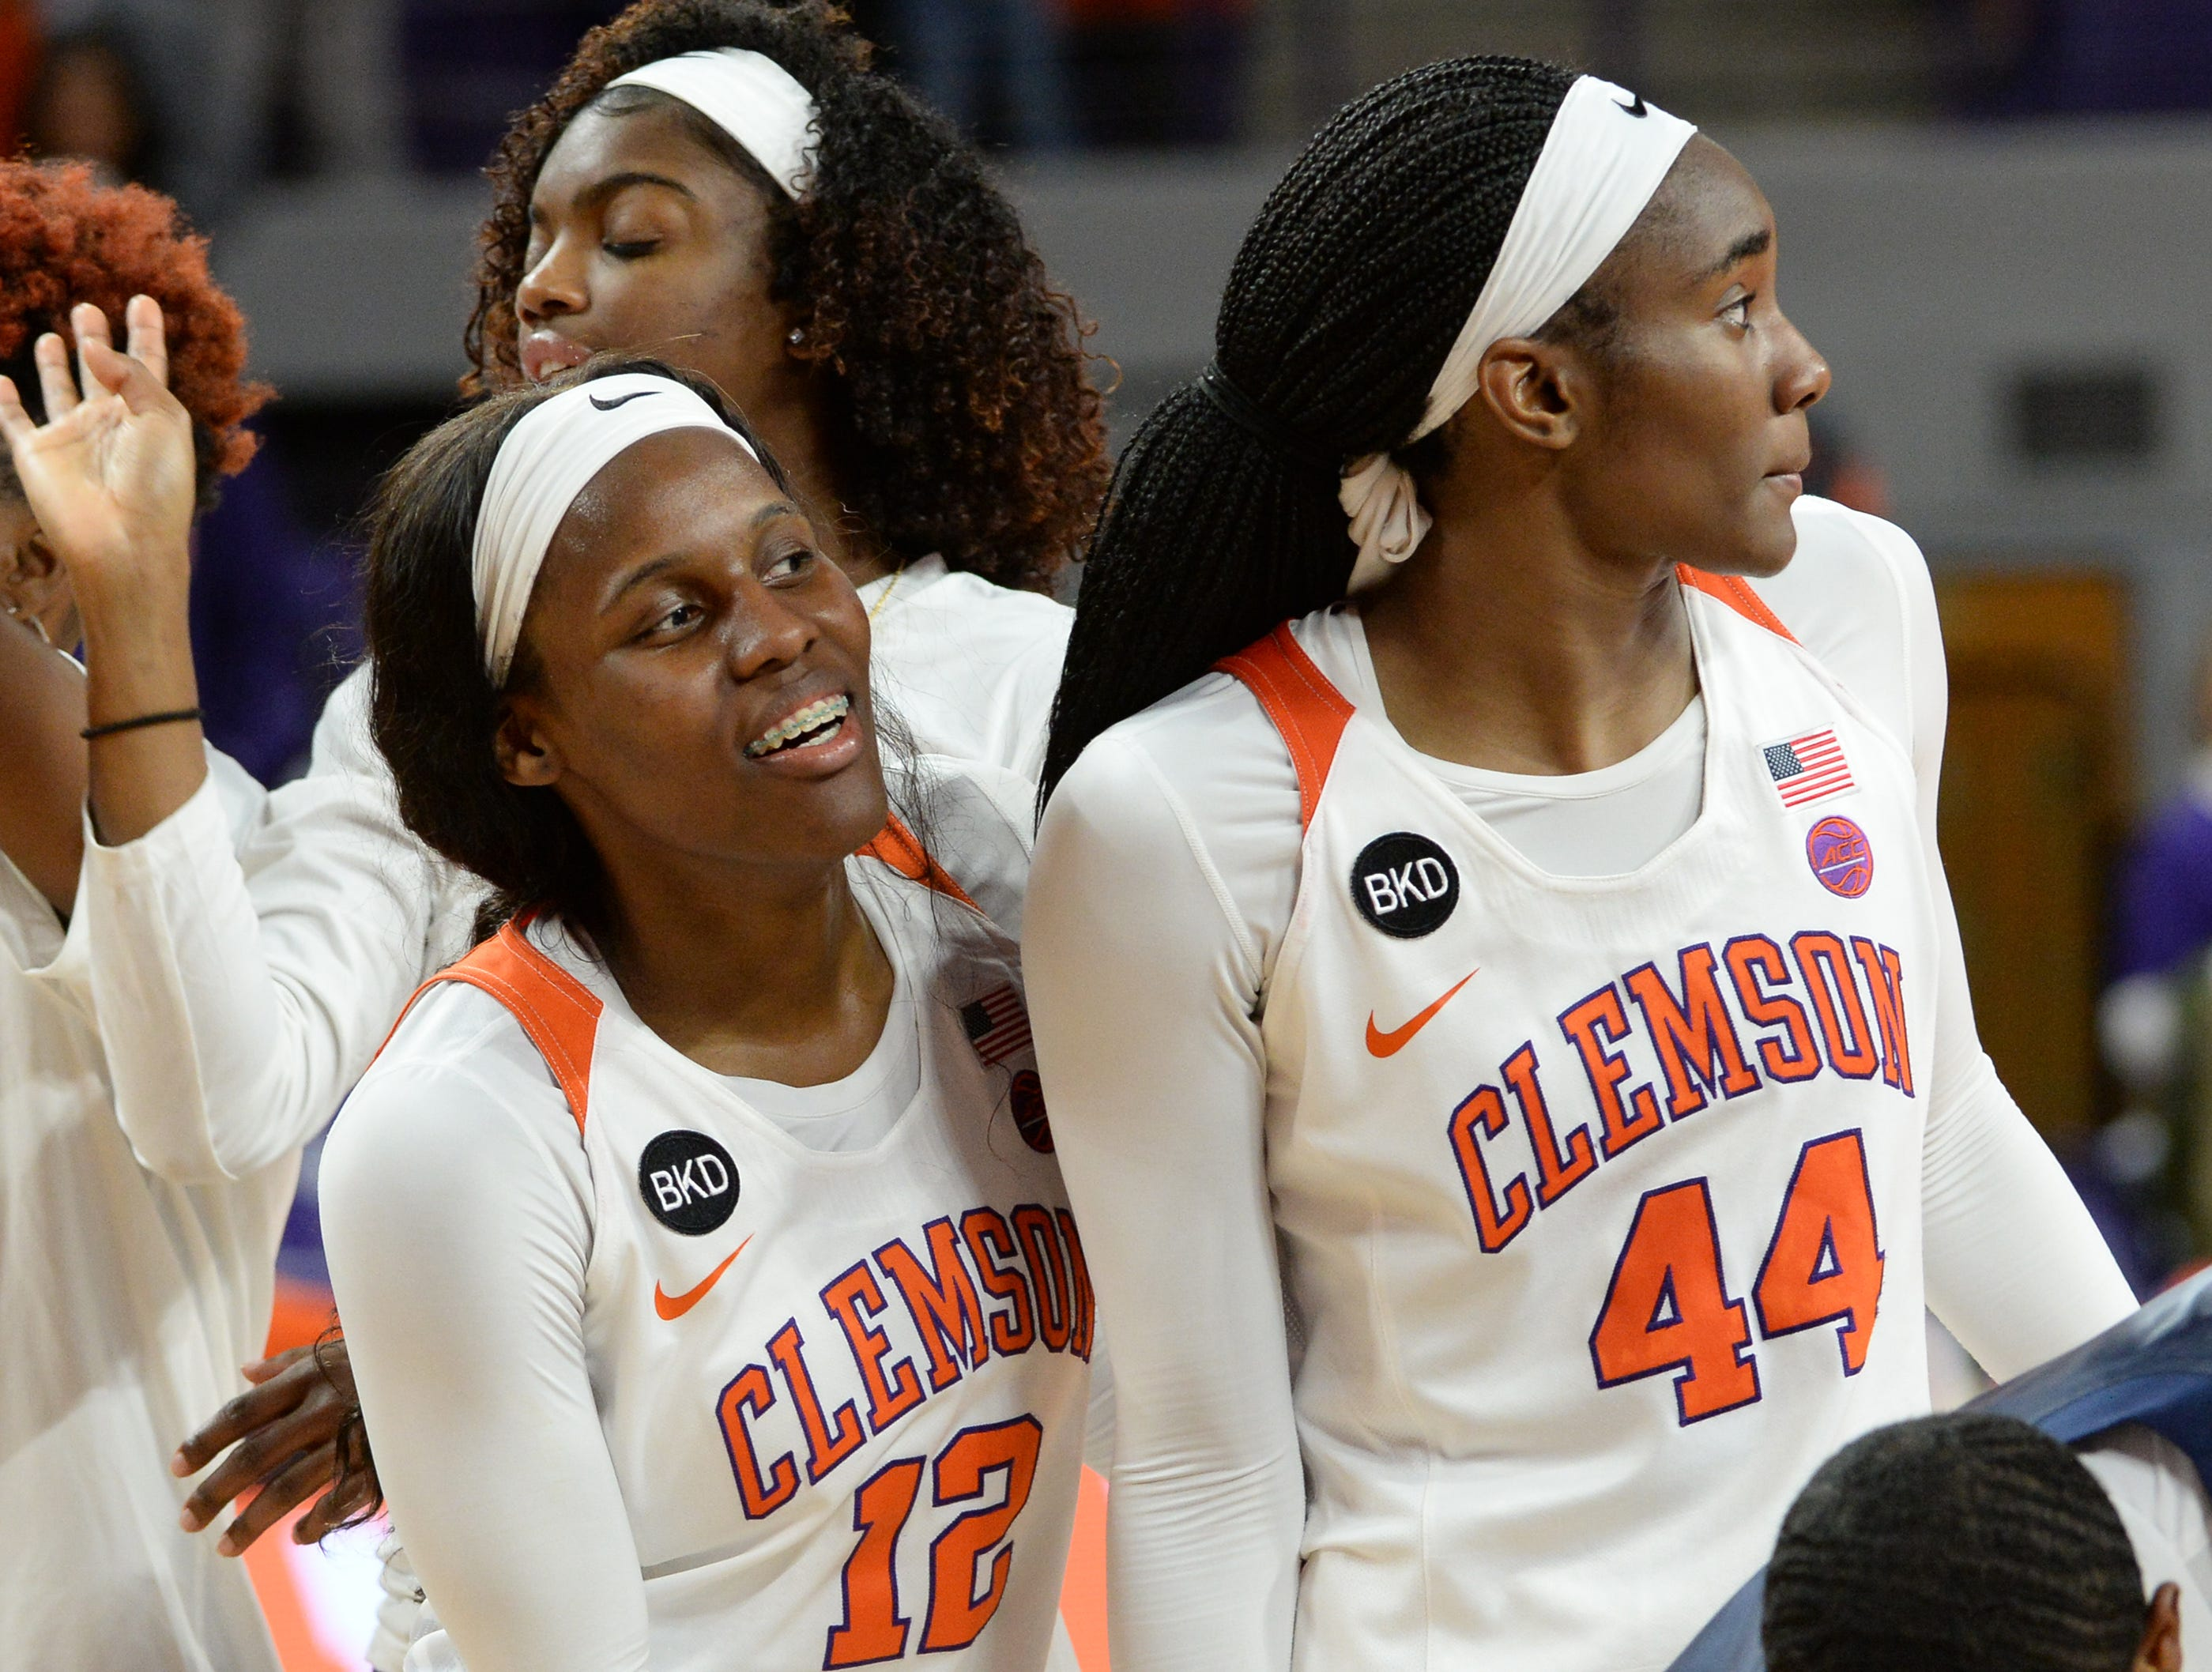 Clemson guard Aliyah Collier(12) celebrates with center Kobi Thornton(44) and teammates a 71-61 win over Georgia Tech after the gameat Littlejohn Coliseum in Clemson on Thursday, January 17, 2019.